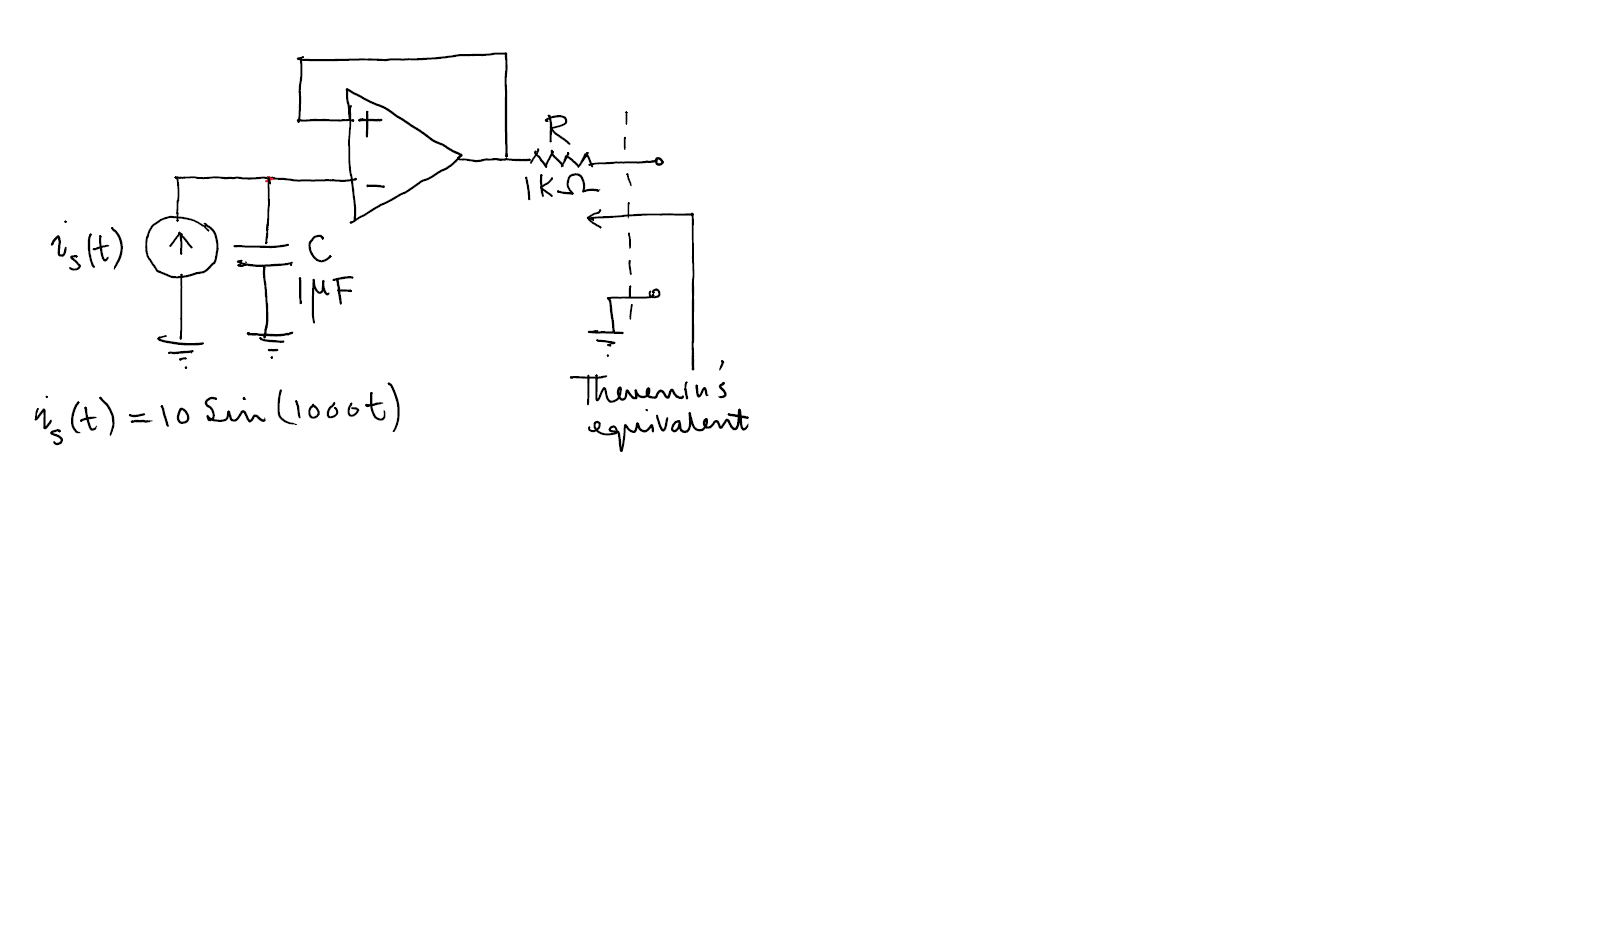 Draw the Thevenin's equivalent in Phasor Domain fo